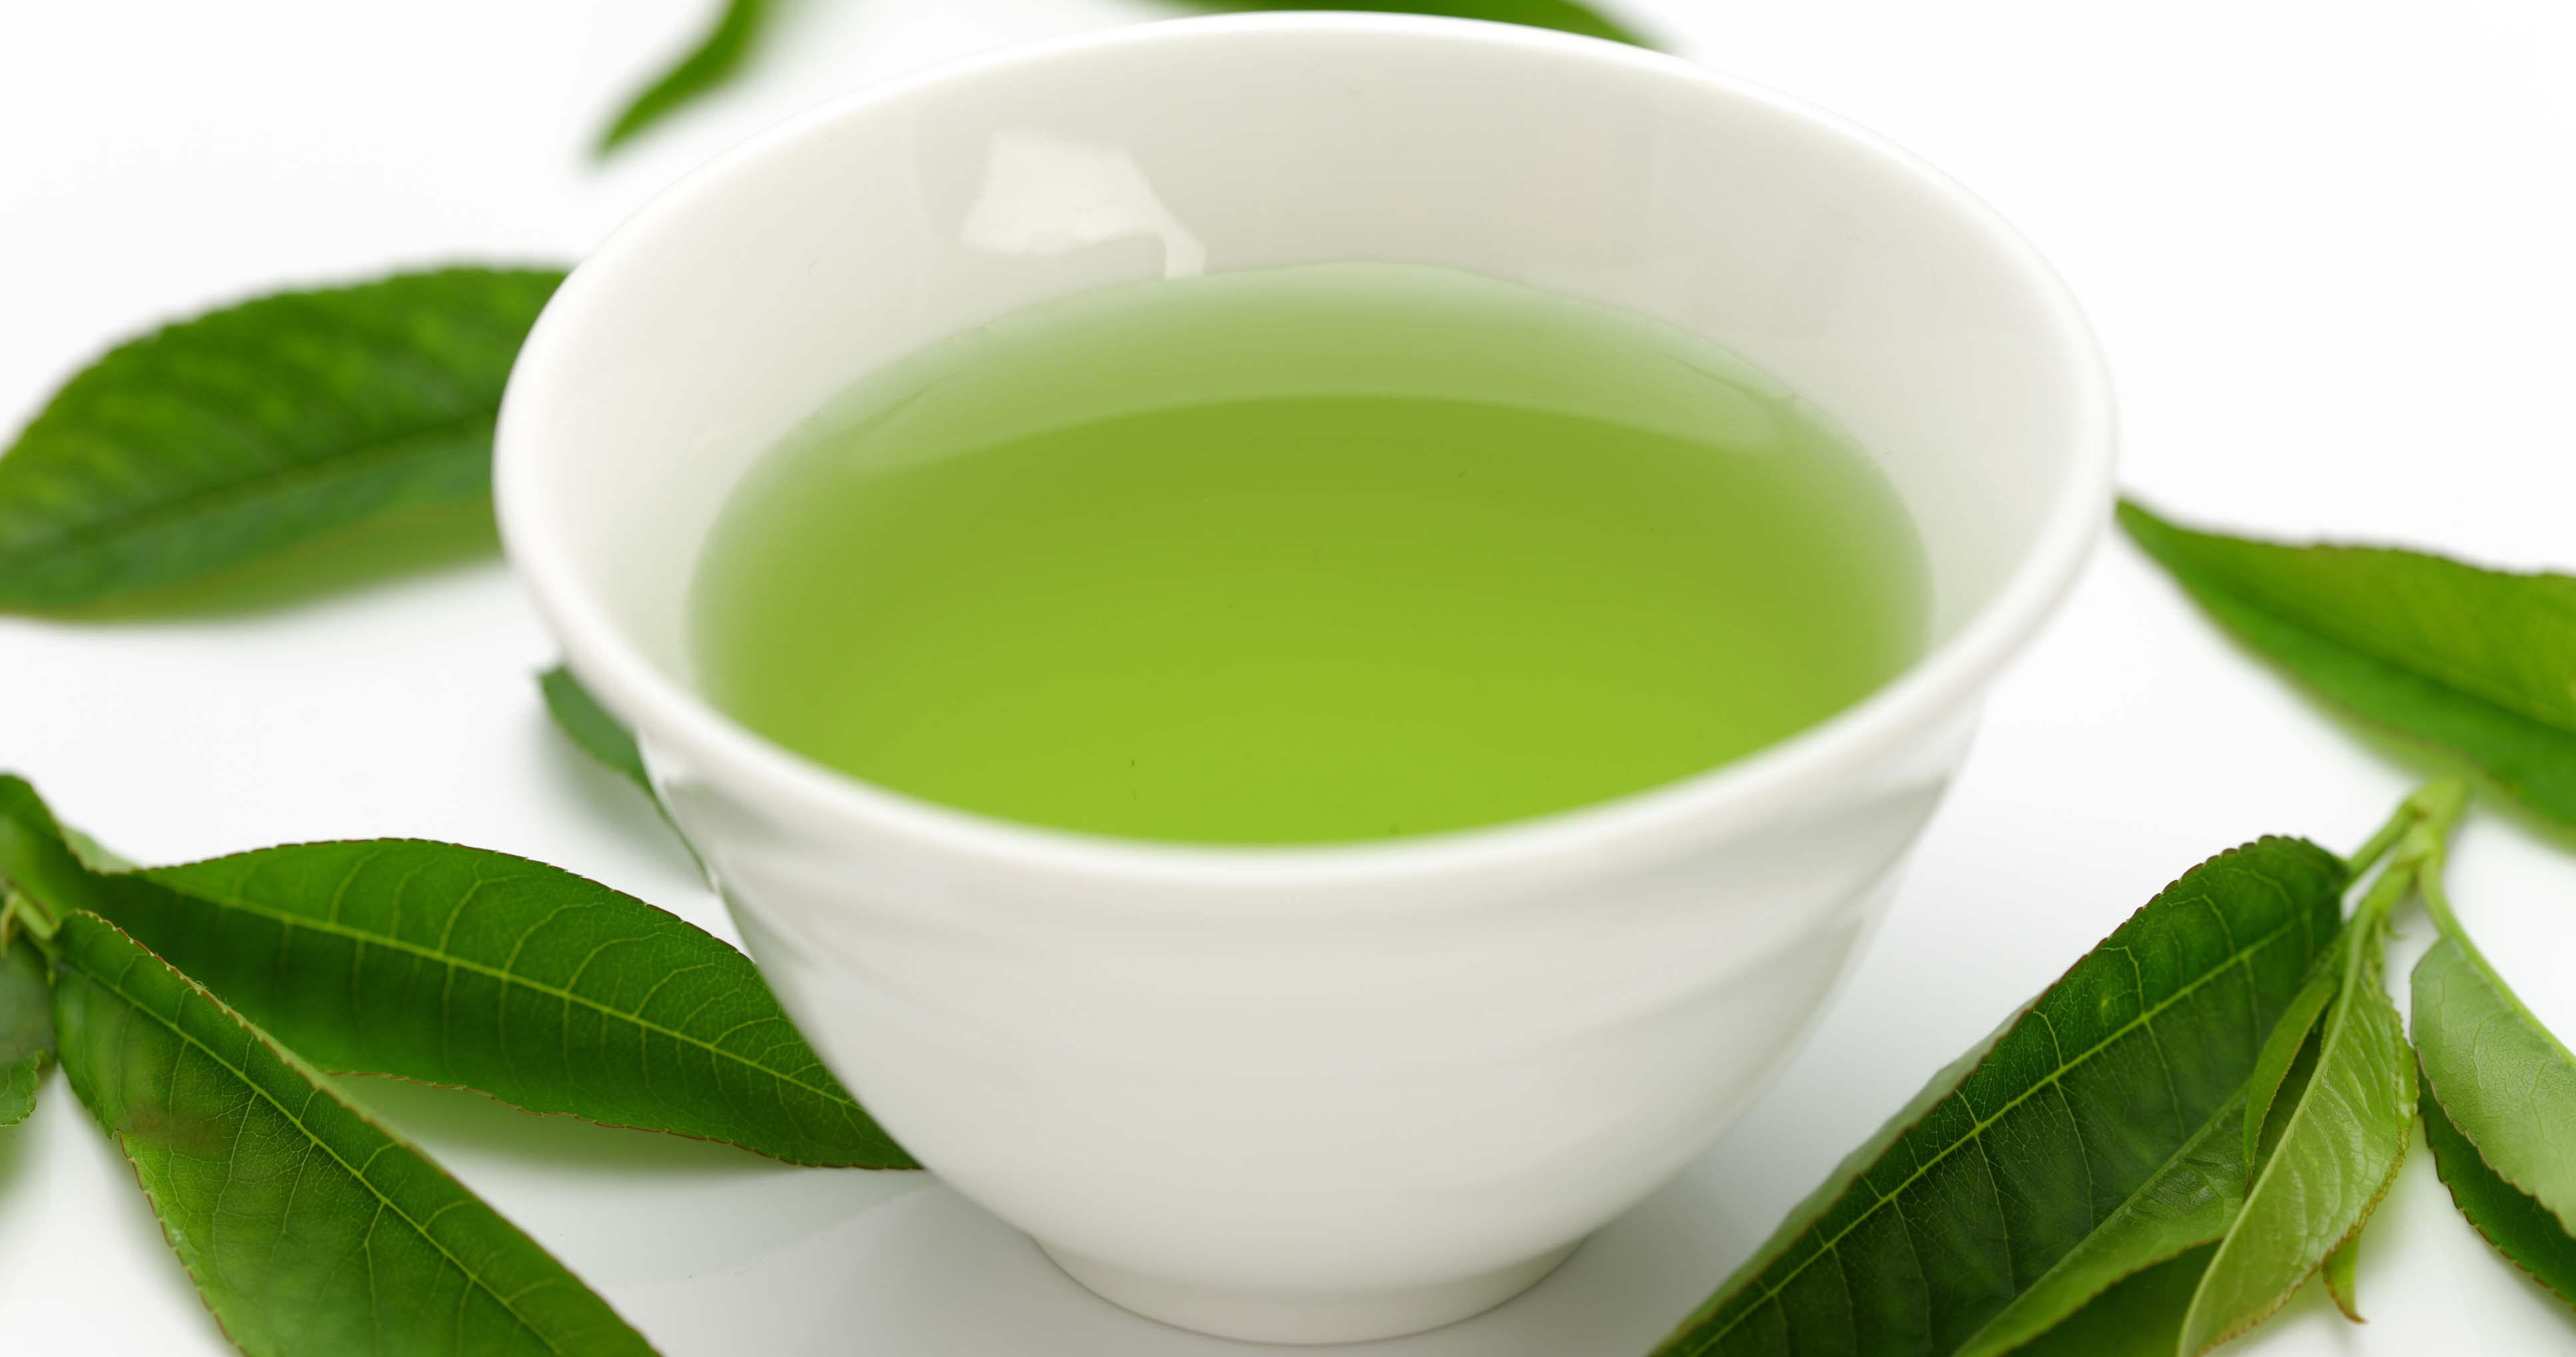 Green tea surrounded by green leaves